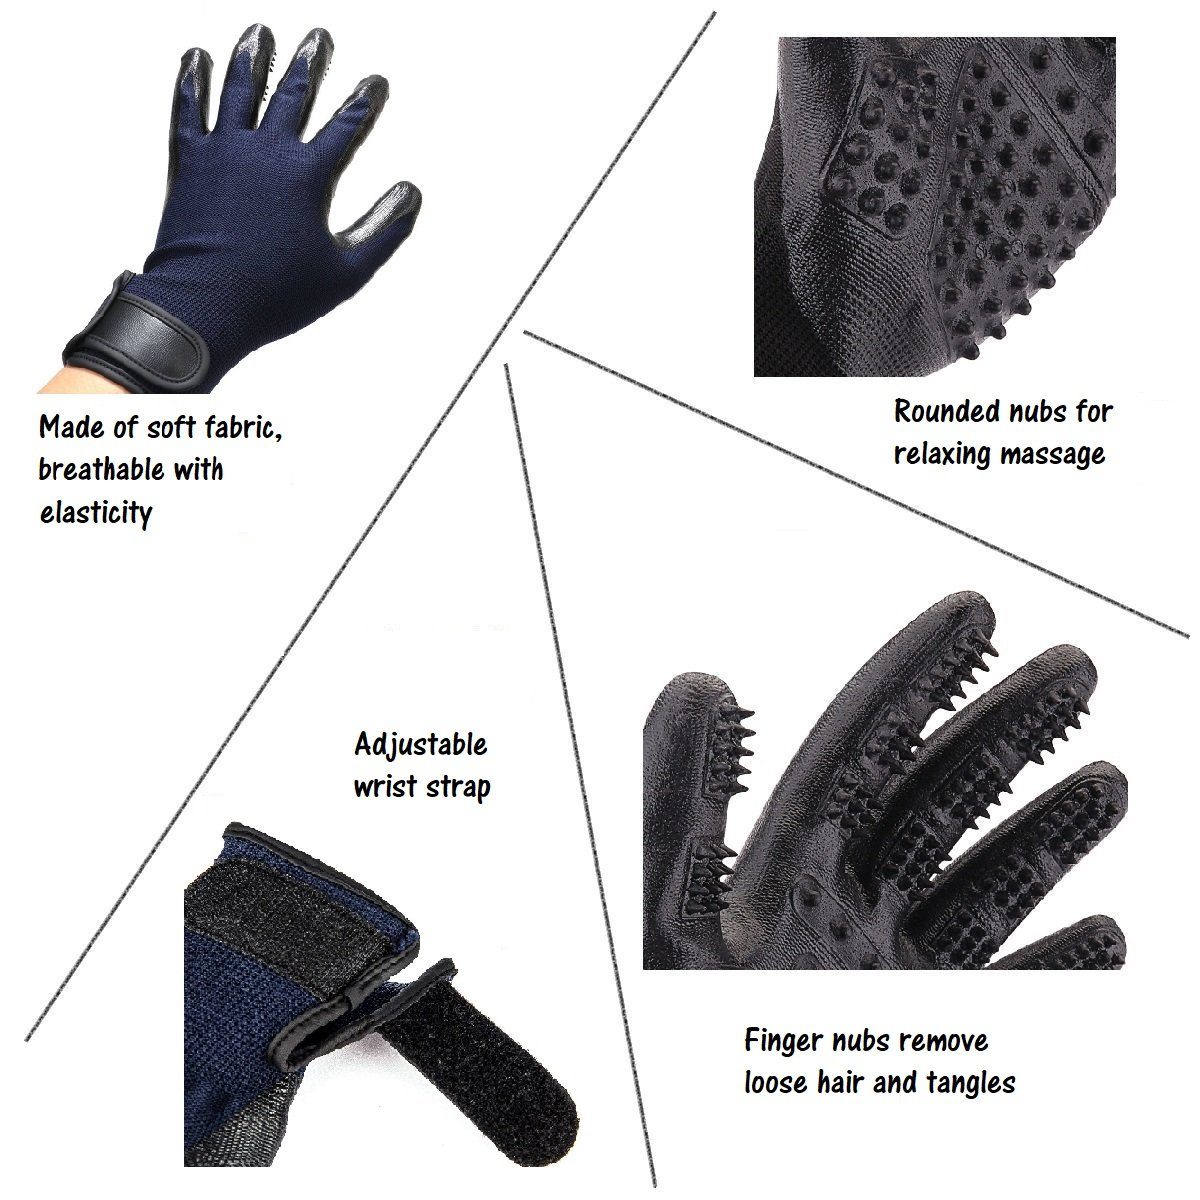 Pet Grooming Glove; Brush Hair Remover Gloves; Deshedding and Massage Gentle Mitt for Long Short Fur Dogs, Cats, Horses, Rabbits by HOHT (Image #5)